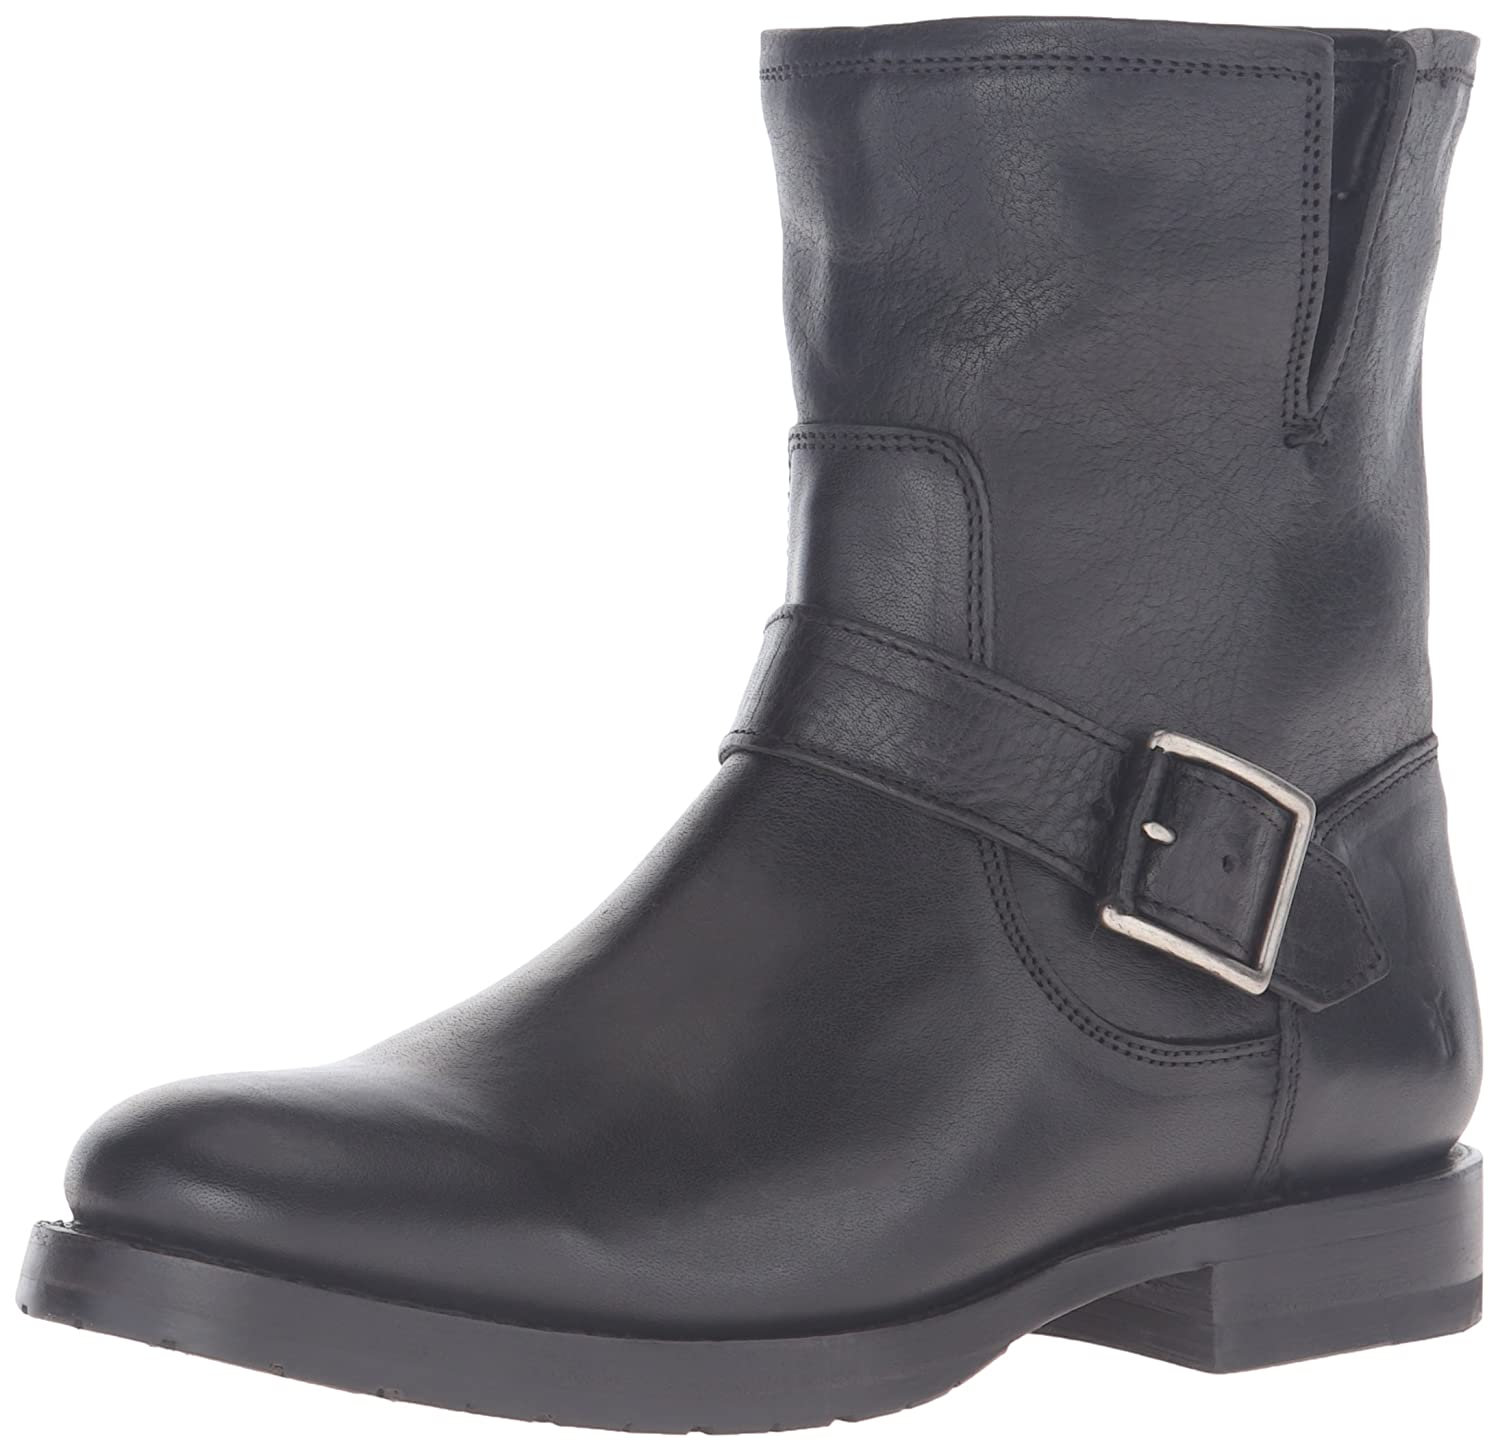 Black Frye Women's Natalie Short Engineer Boot